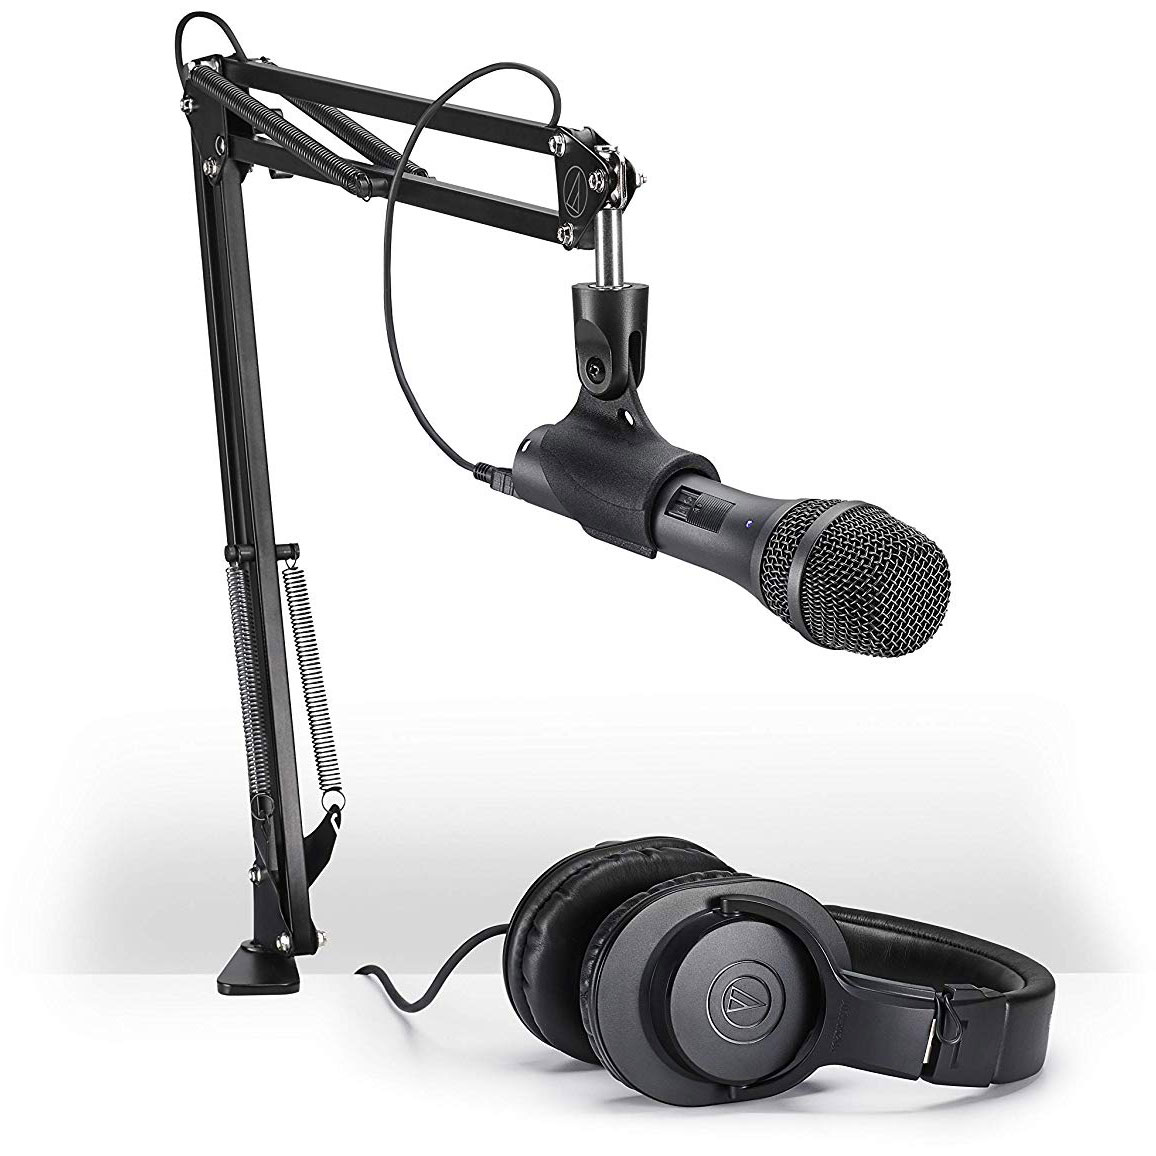 XLR or USB Microphone with headphones connected to a computer - BEST QUALITY, IF AVAILABLE